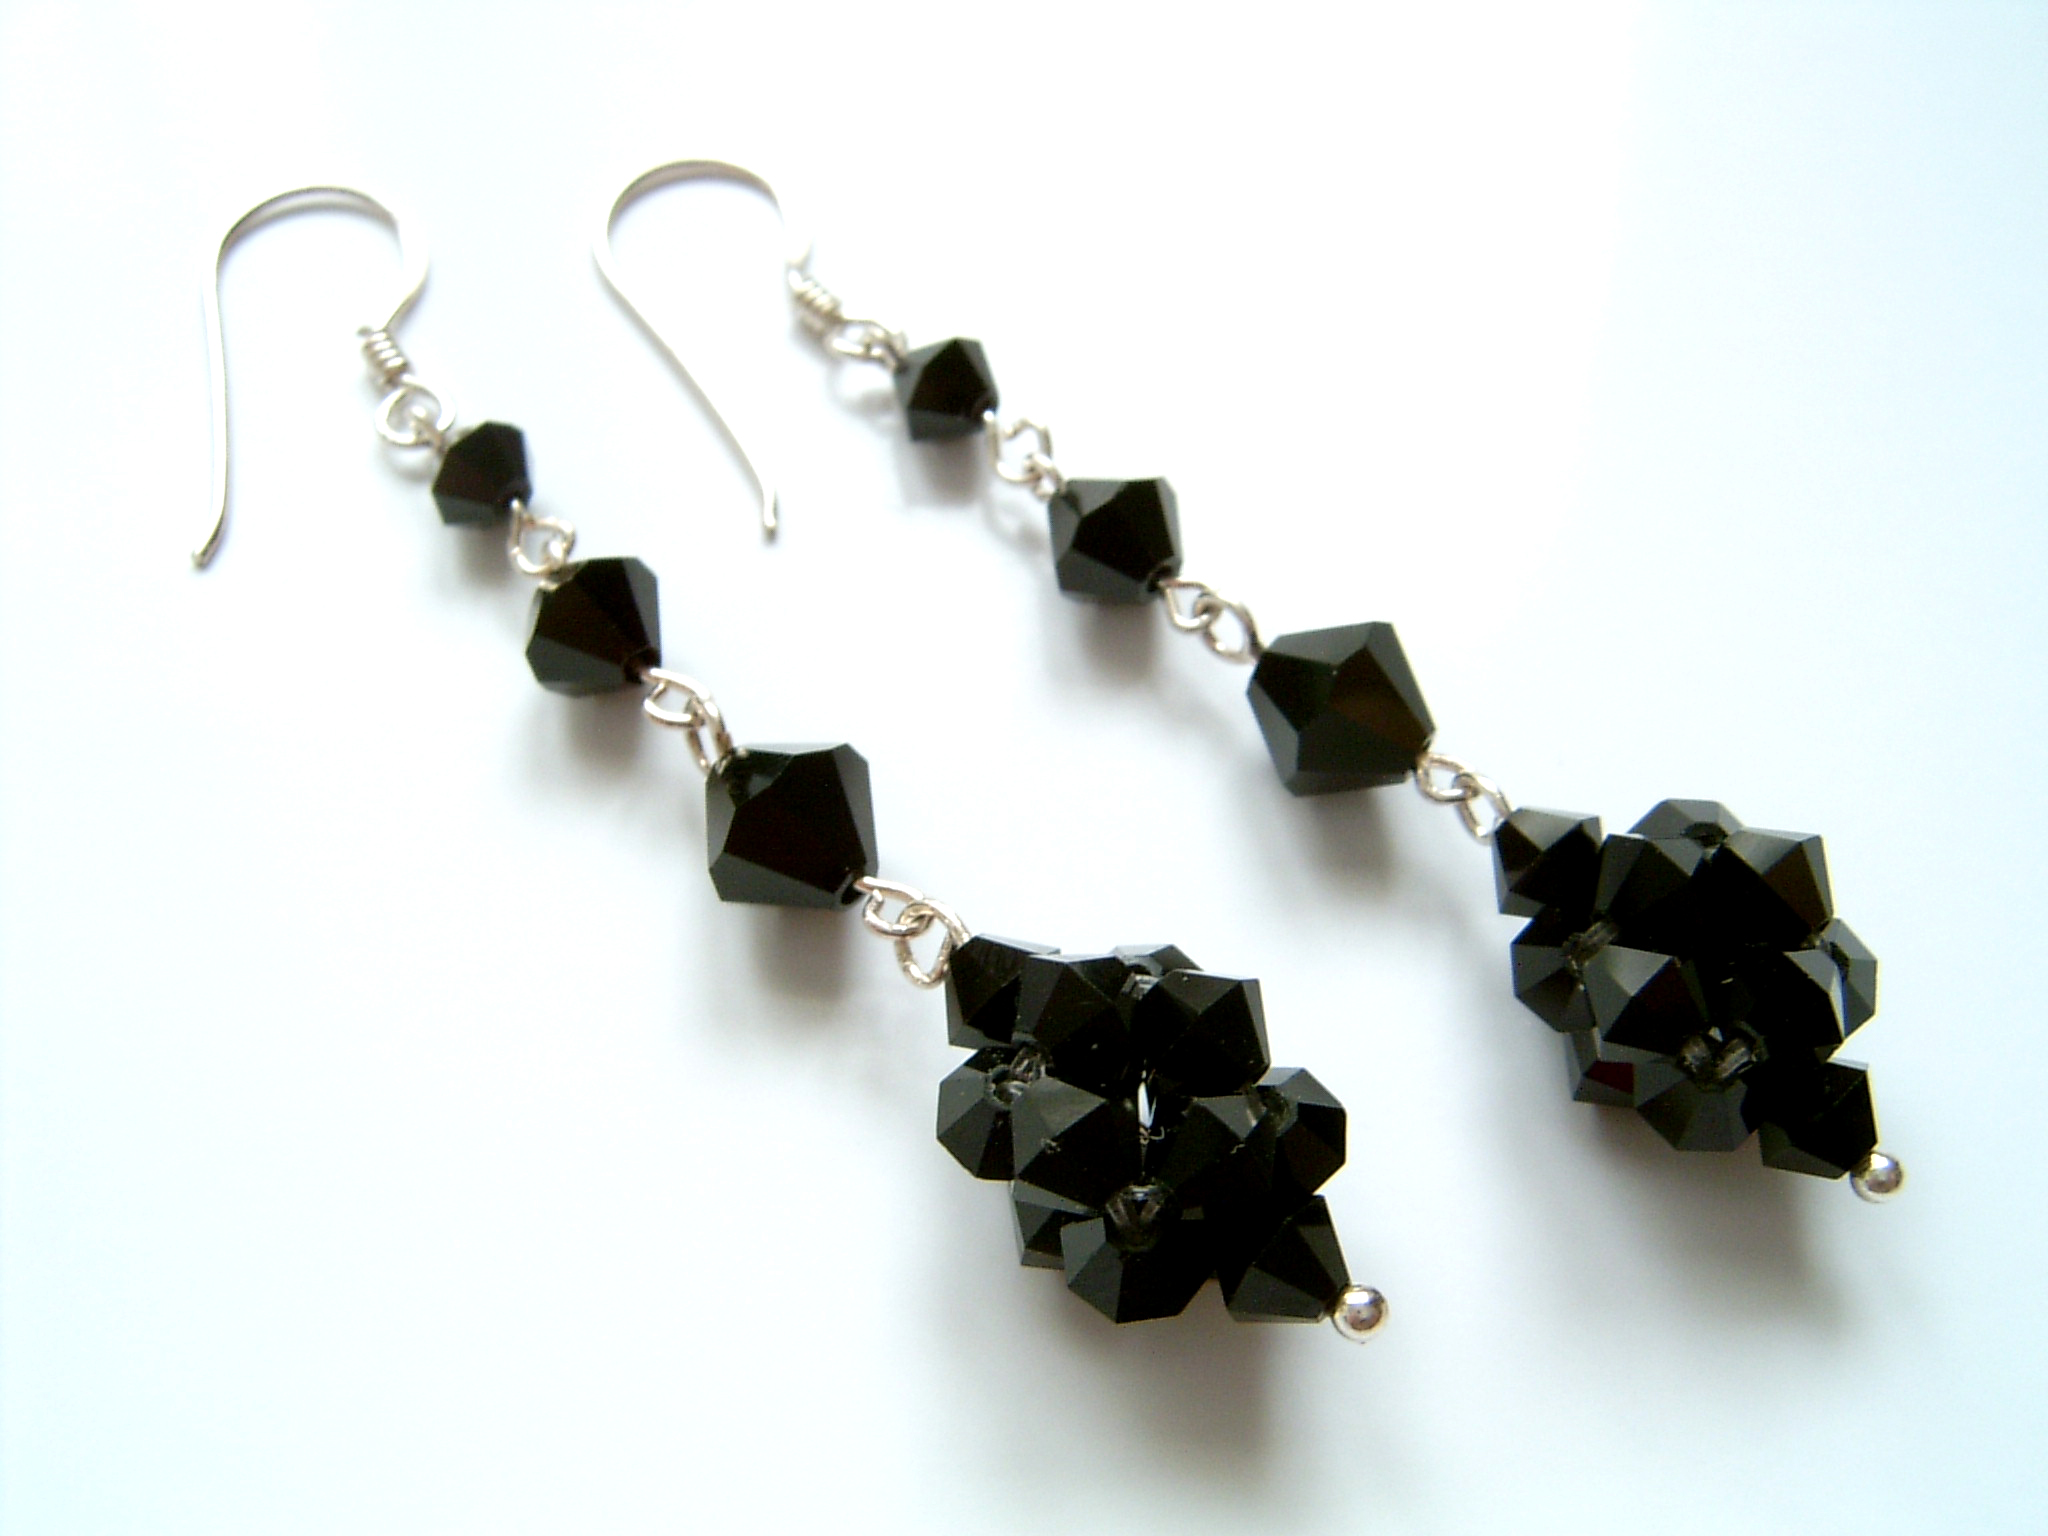 Annette - Crystal Bead Long Drop Earrings (Jet Black) - Bespoke